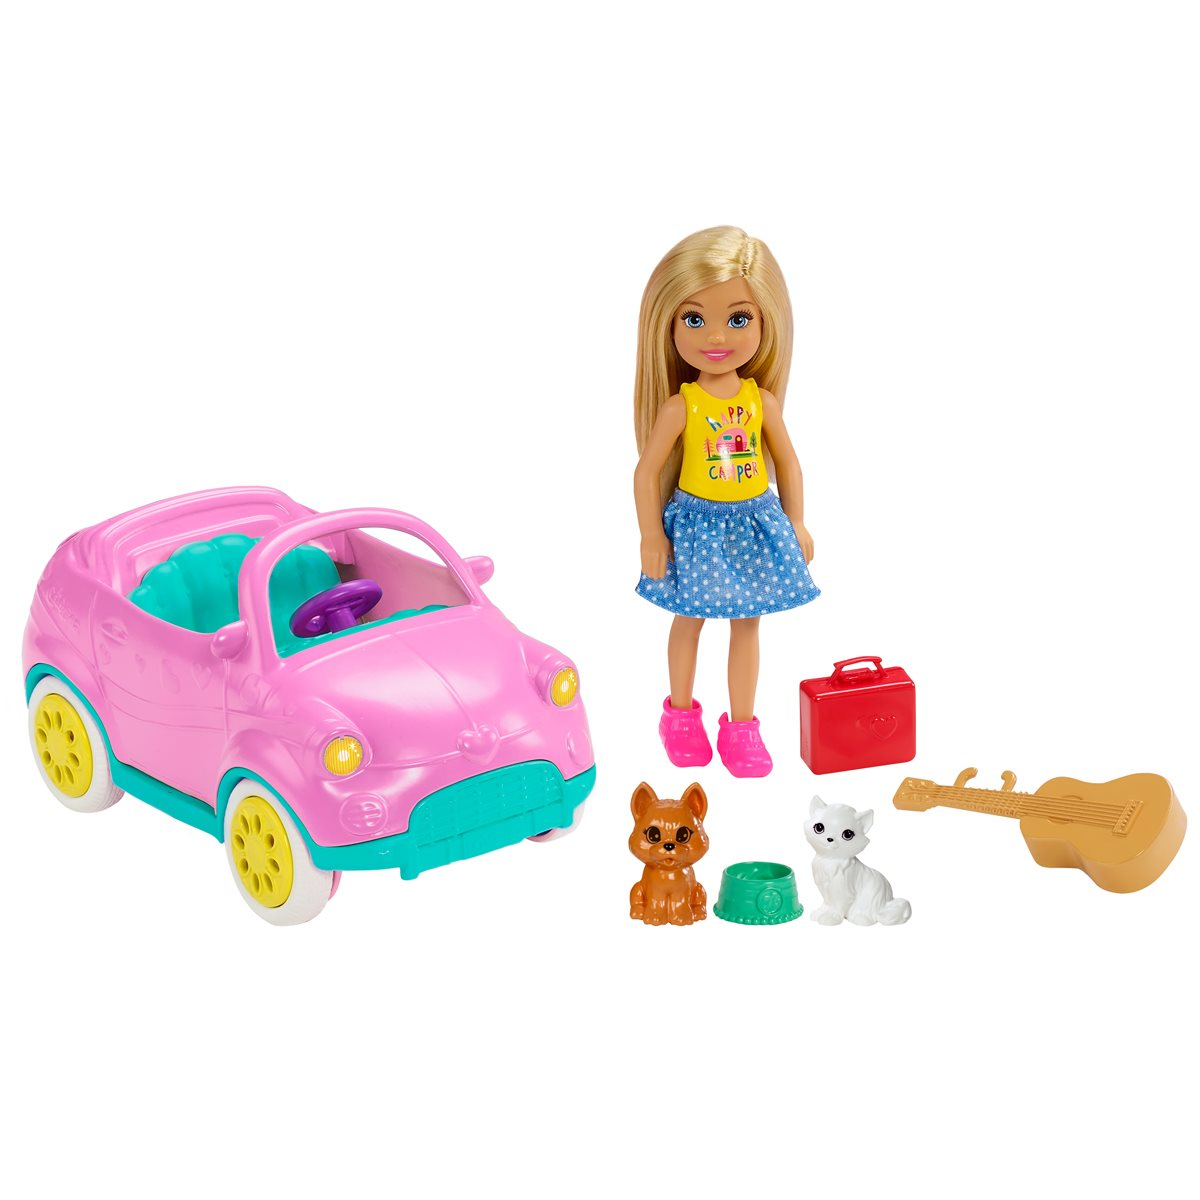 Barbie Club Chelsea Doll And Vehicle Set Entertainment Earth